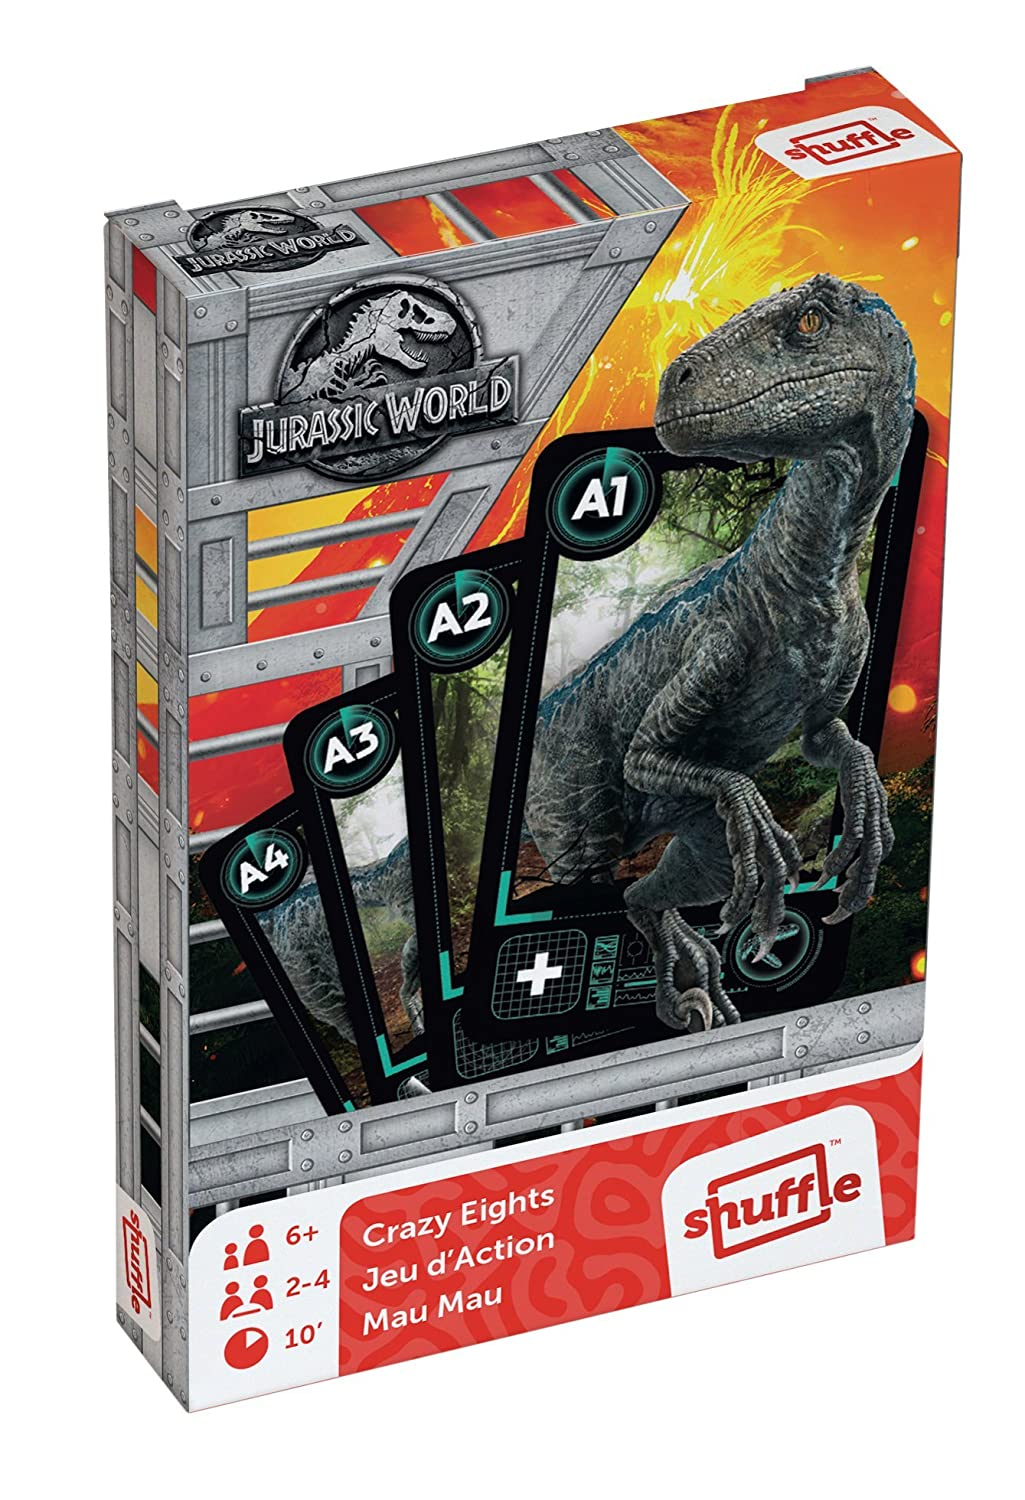 Cartamundi 108420928 Jurassic World Crazy Eights